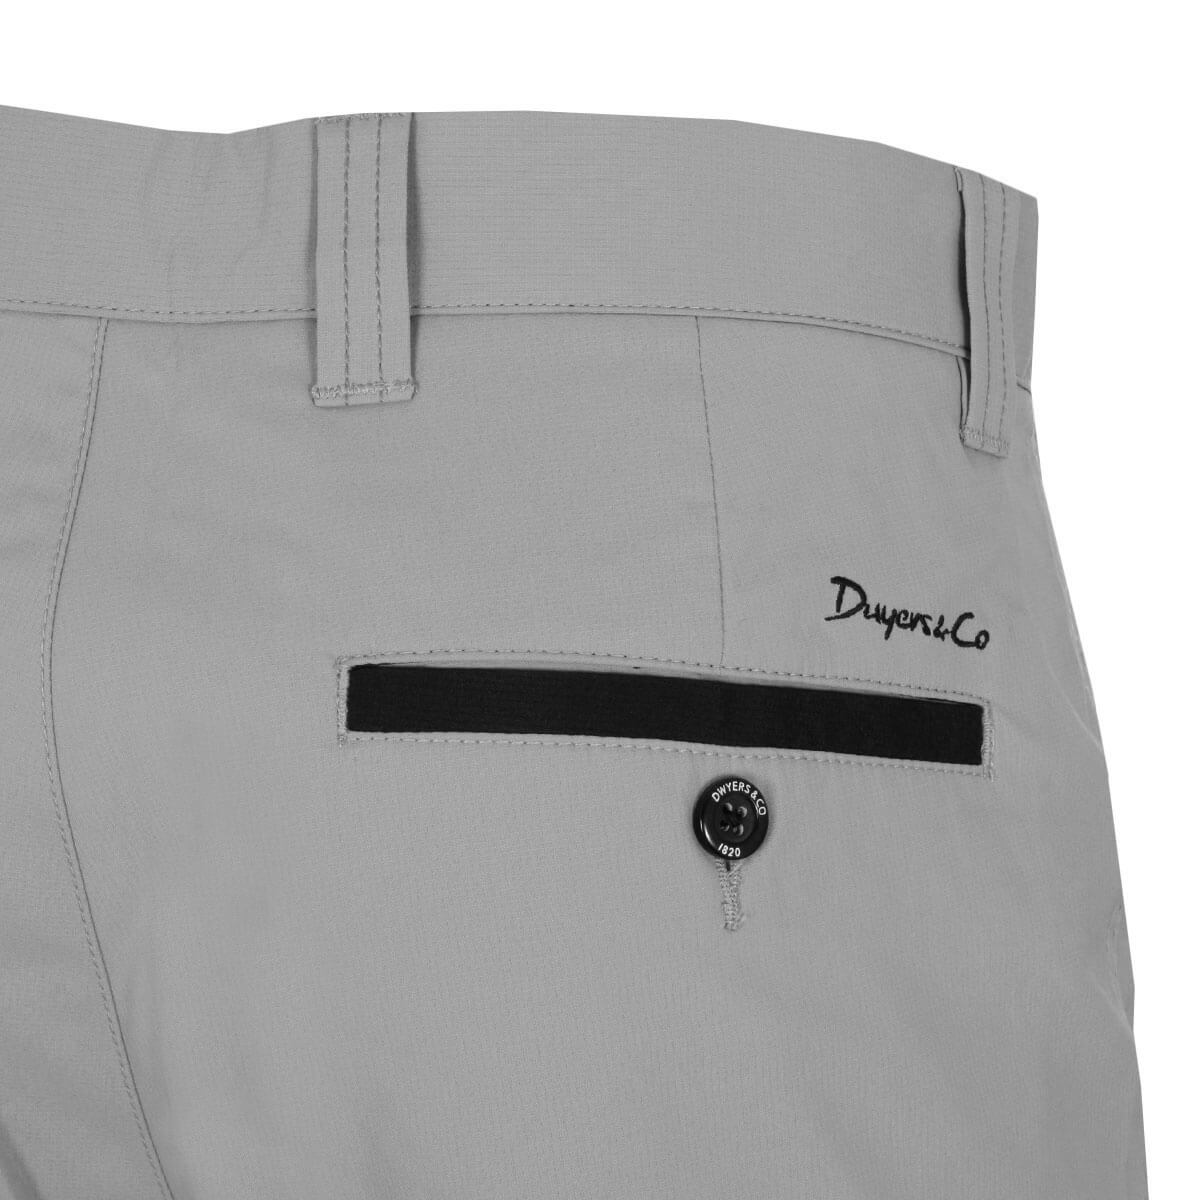 Dwyers-amp-Co-Mens-Matchplay-Performance-Golf-Lightweight-Shorts-26-OFF-RRP thumbnail 8